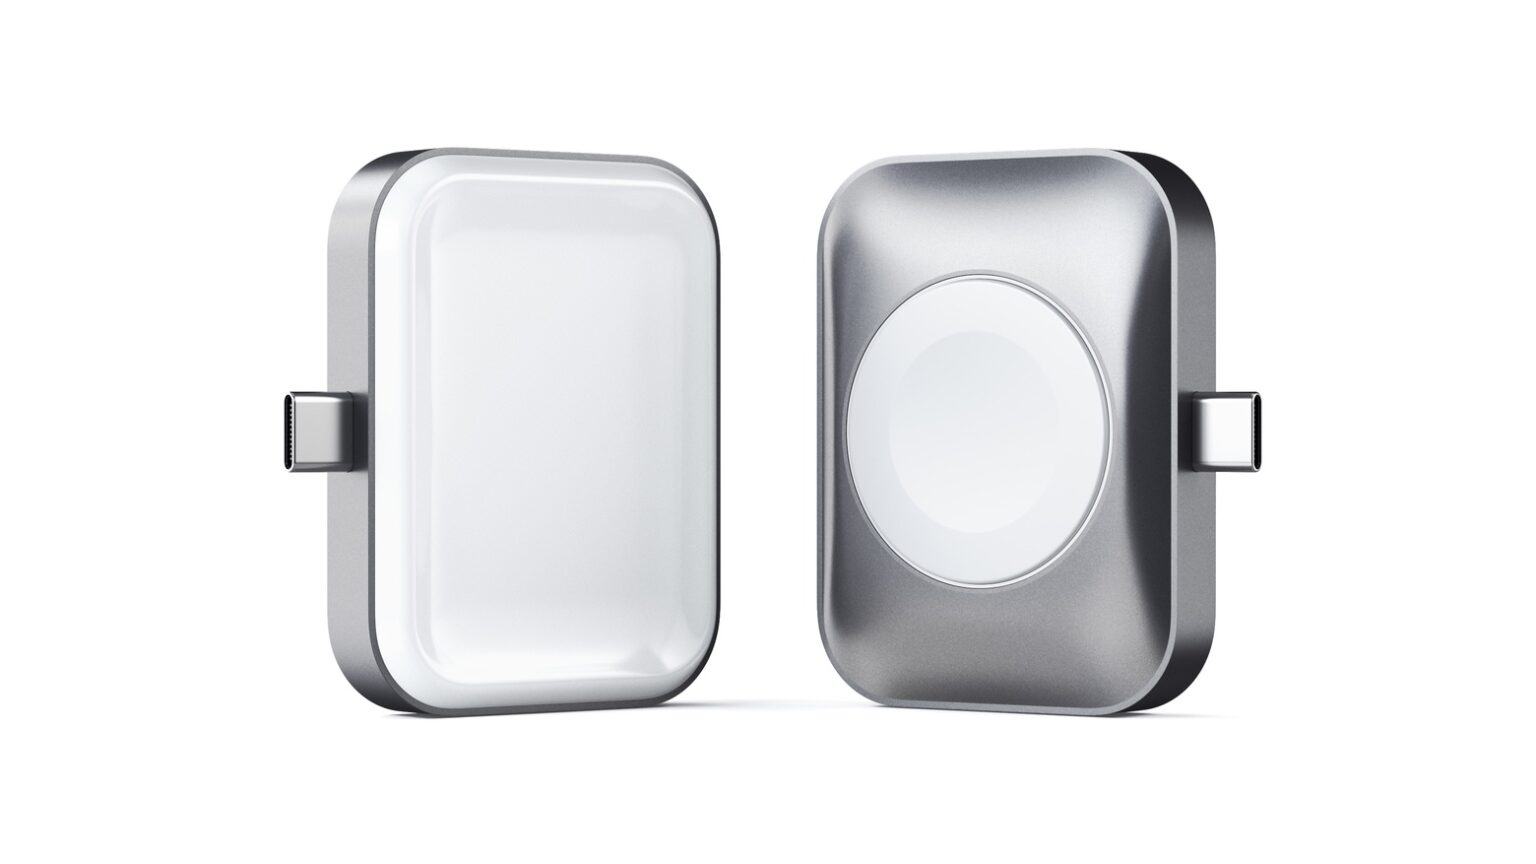 The Satechi USB-C Watch AirPods Charger takes on two Apple wearable devices.